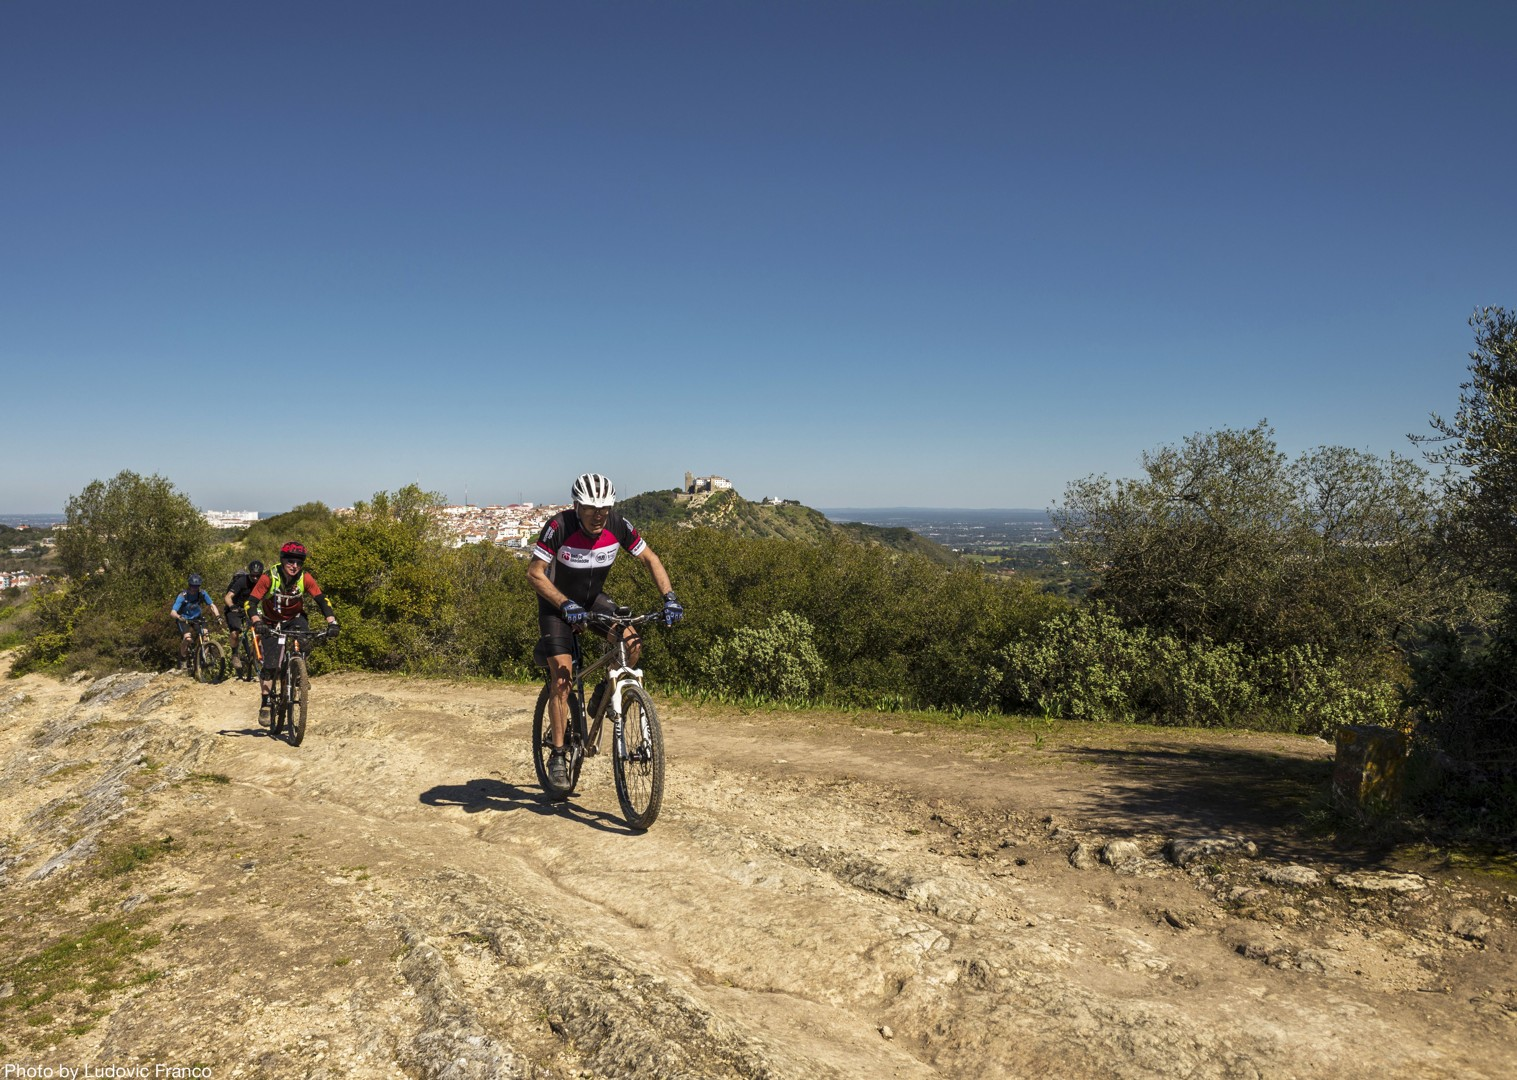 scenic-ocean-views-mtb-holiday-atlantic-trails-portugal.jpg - Portugal - Atlantic Trails - Mountain Biking